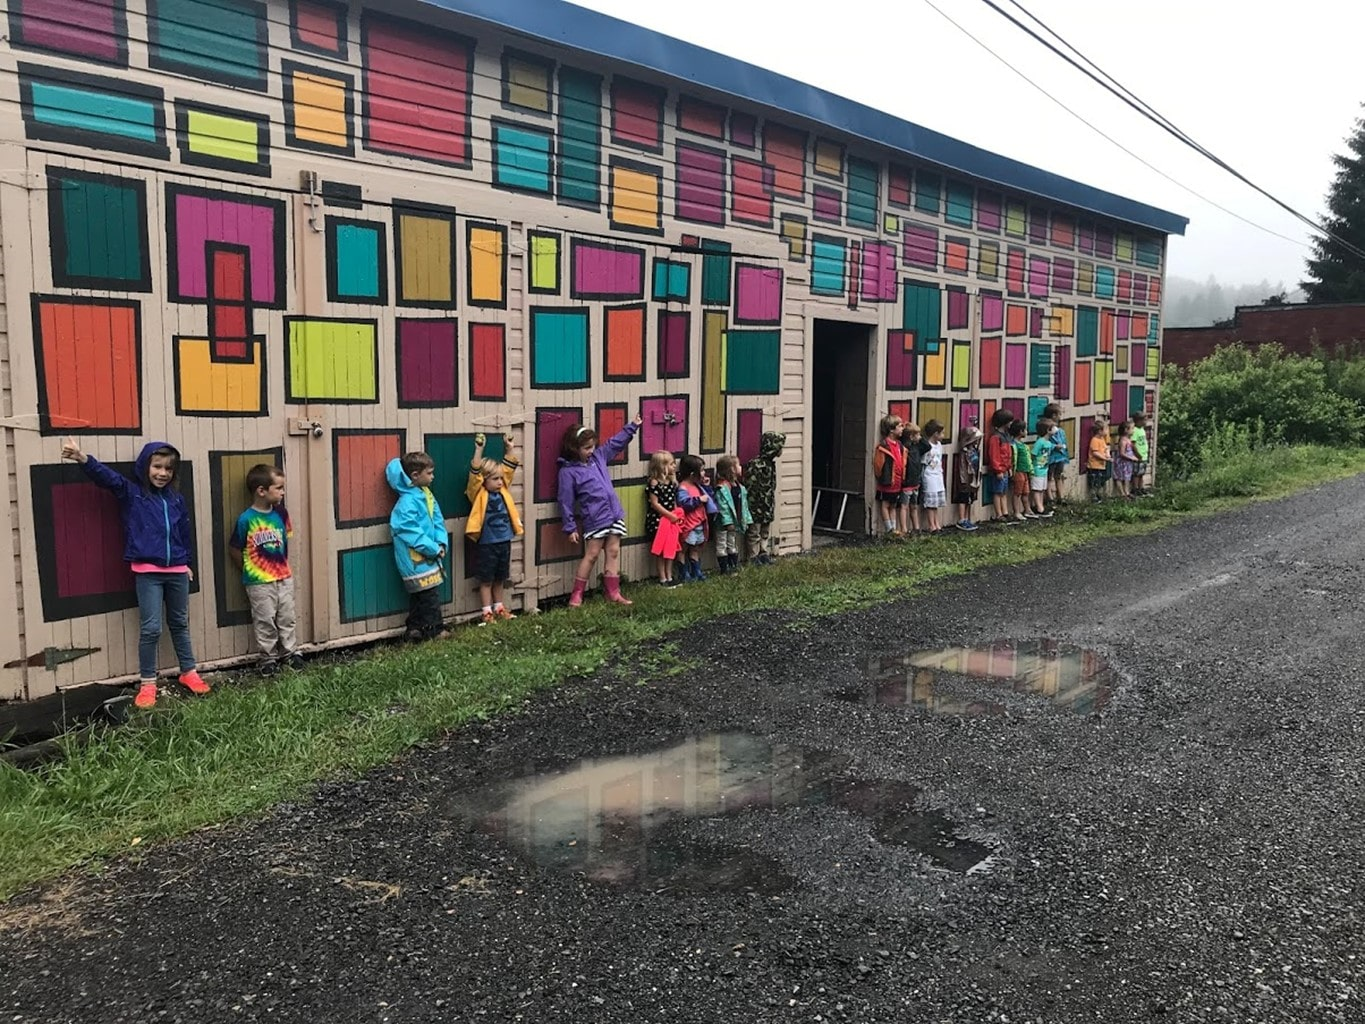 Children in front of a mural - Photo: [bc]